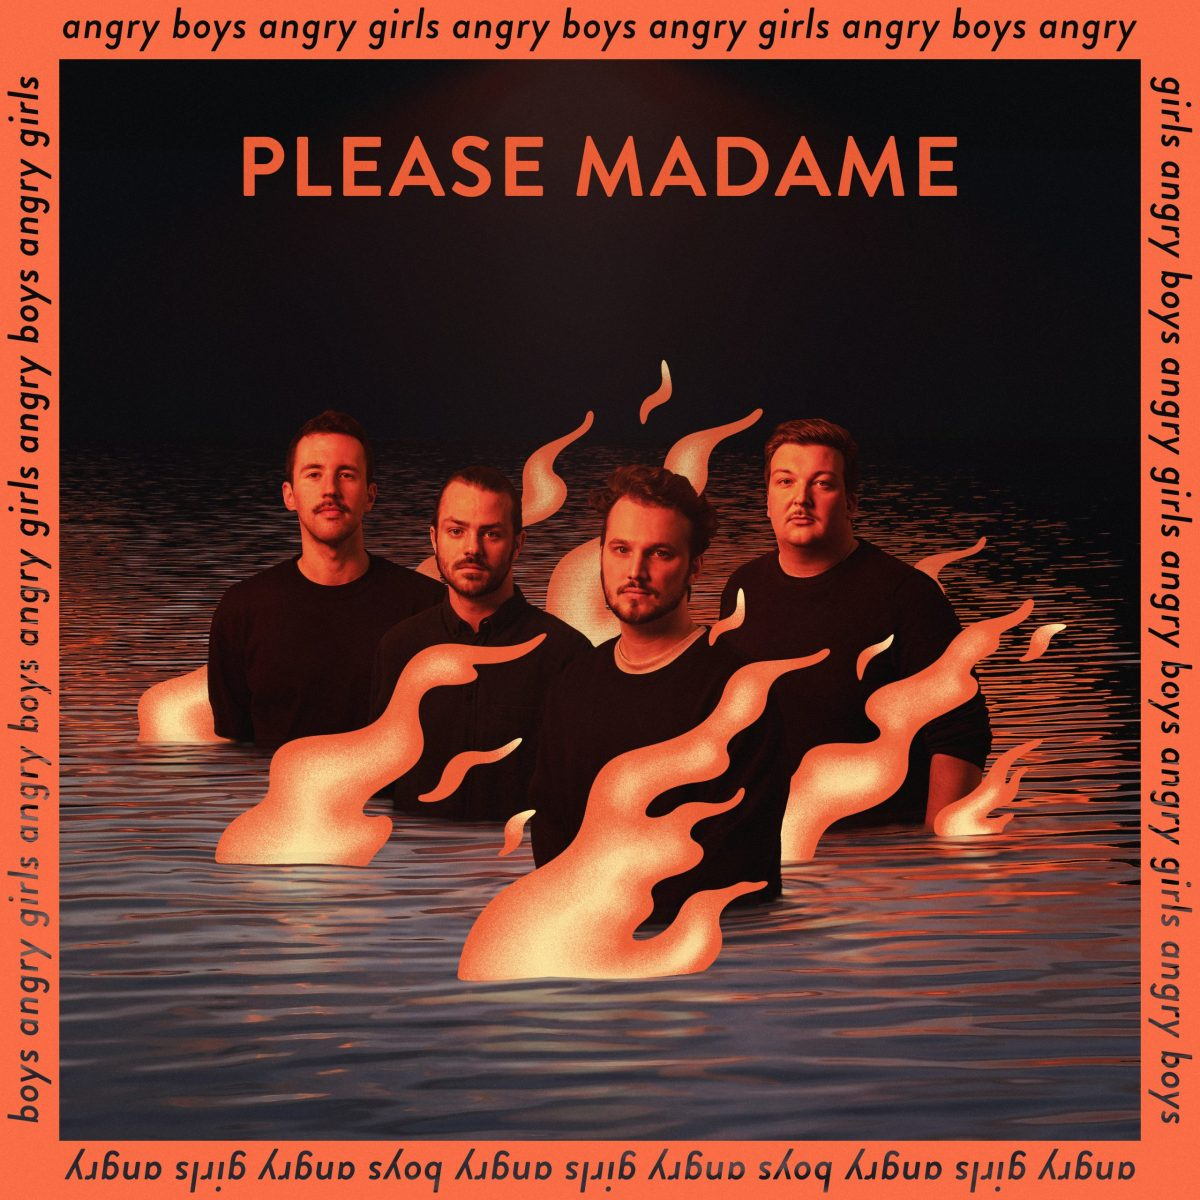 please-madame-angry-boys-angry-girls-album-review